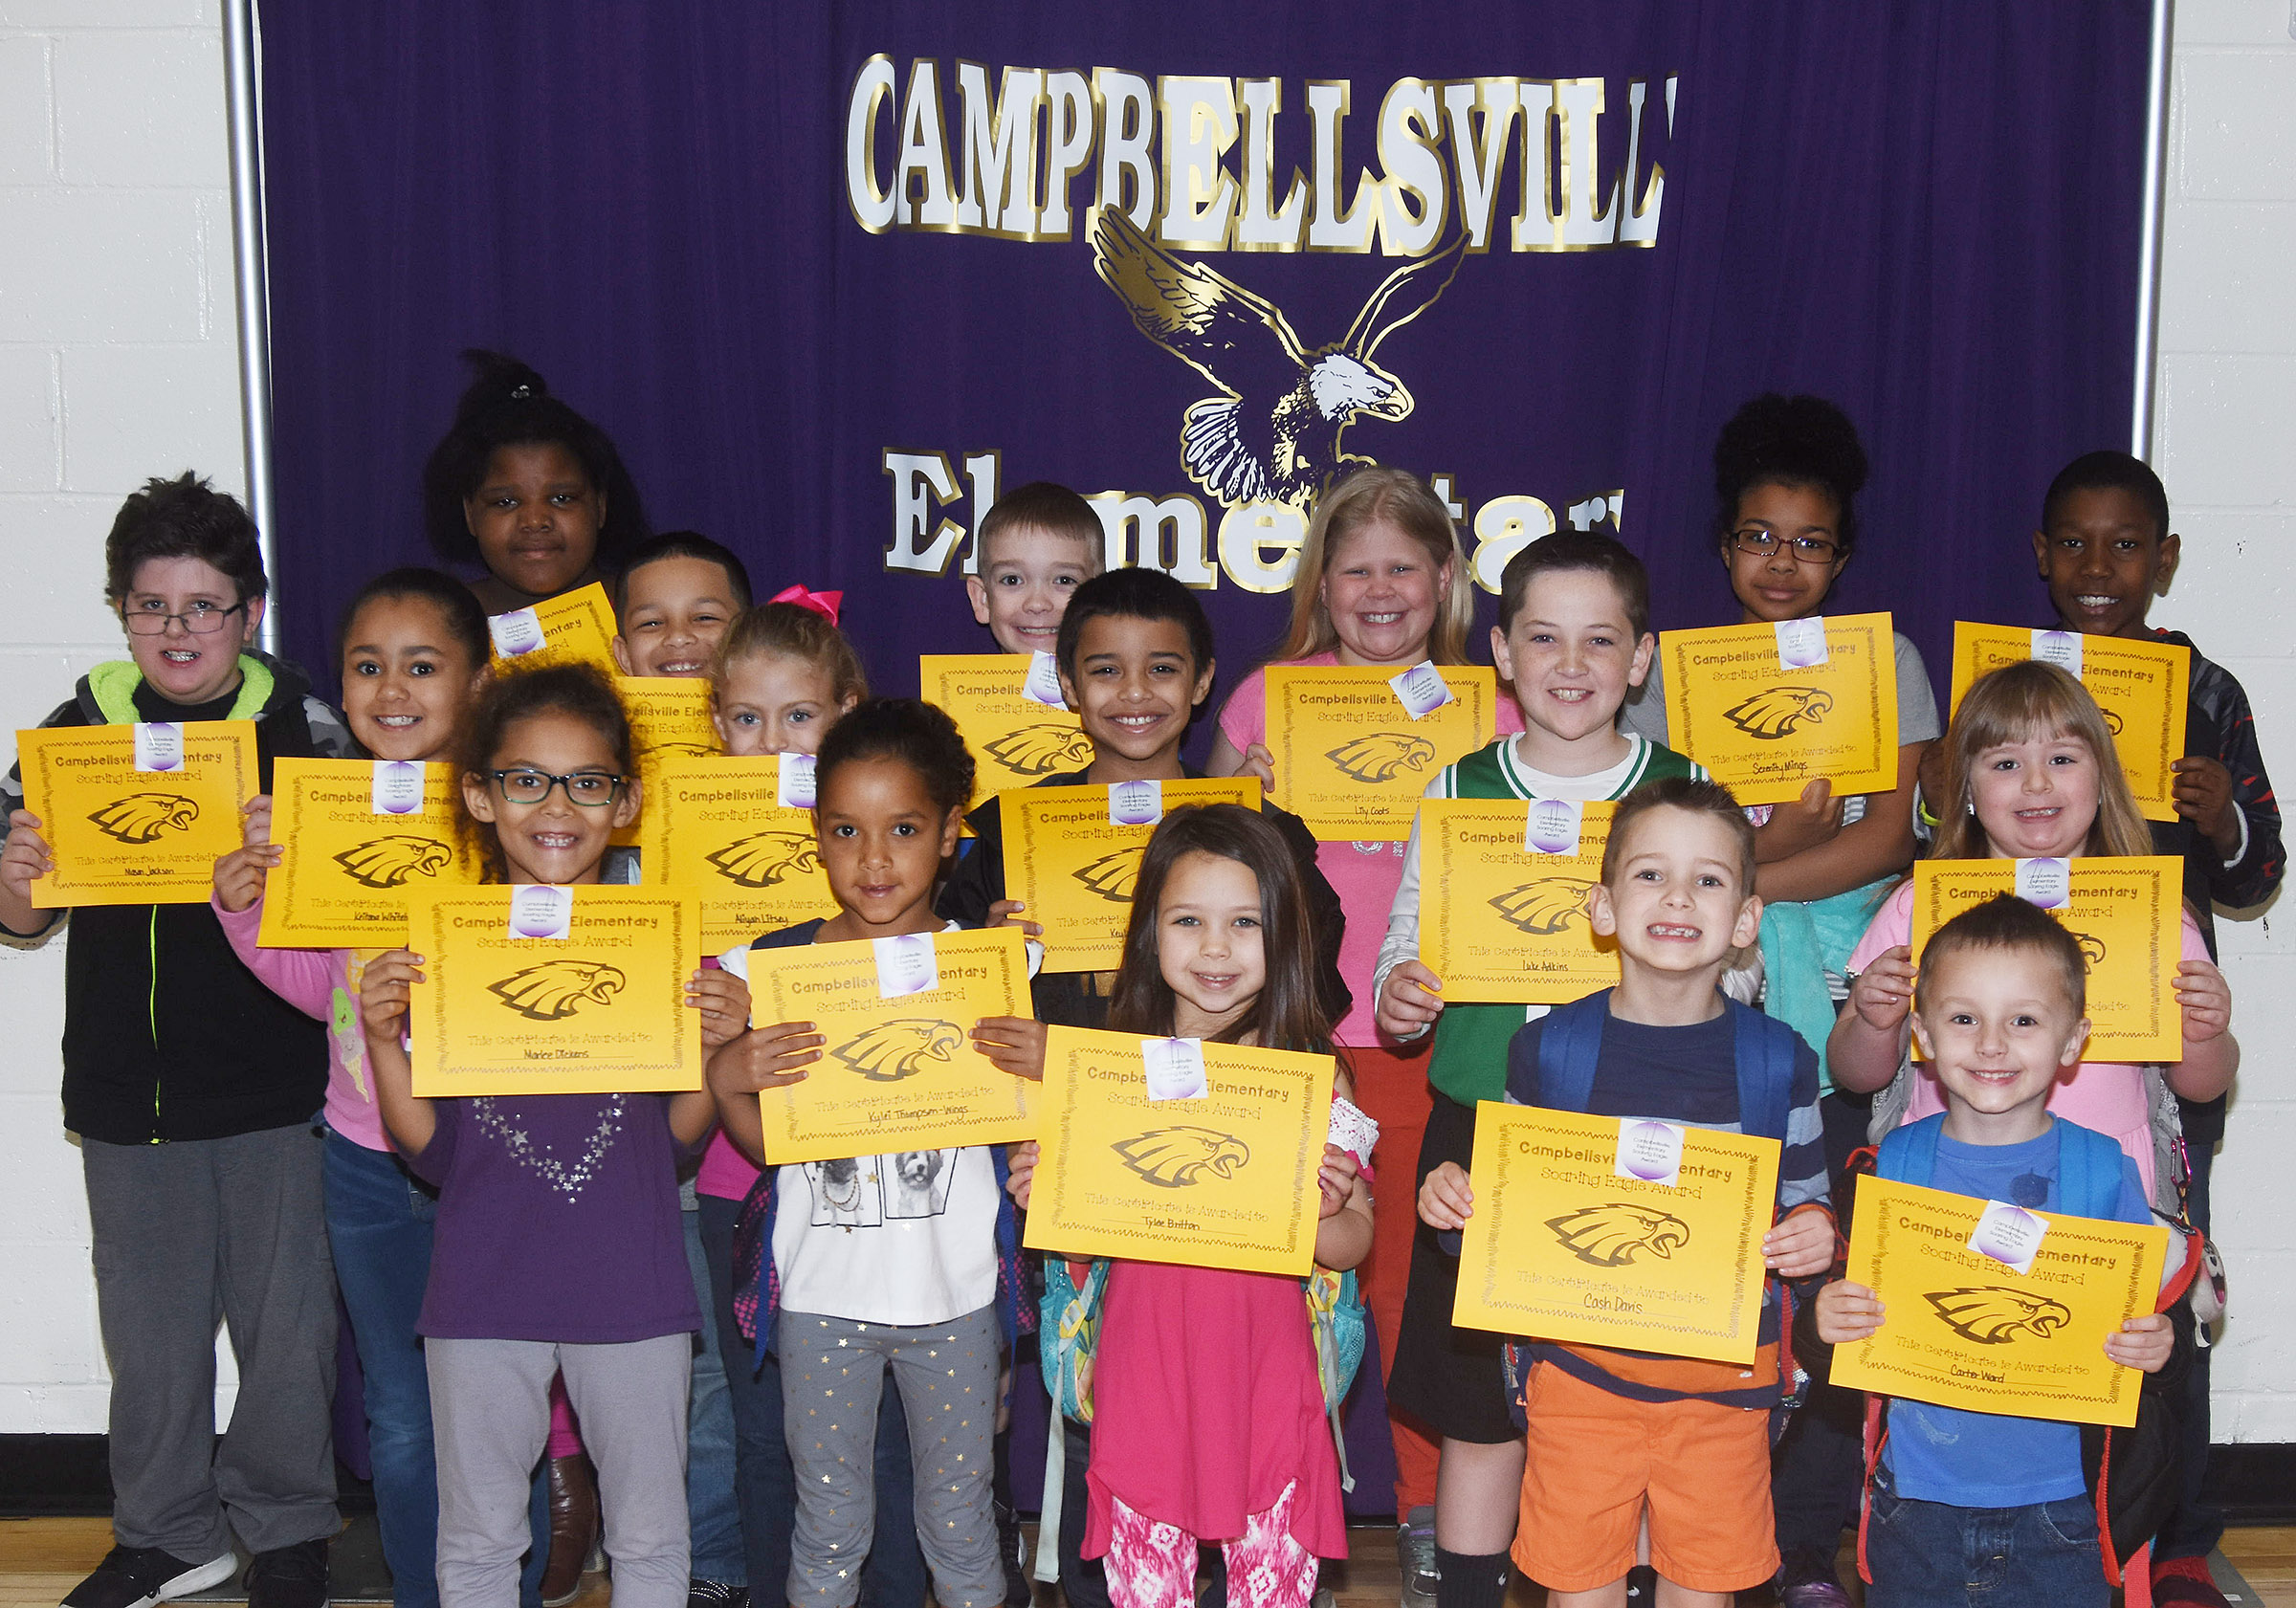 From left, front, are first-graders Marlee Dickens and Kylei Thompson and kindergarteners Tylee Britton, Cash Davis and Carter Ward. Second row, second-grader Keitona Whitehead, first-grader Aliyah Litsey, third-graders Keylan Strong and Luke Adkins and first-grader Briley Sapp. Back, third-grader Mason Jackson, fourth-grader Talaysia Daniels, second-grader Makyian Bridgewater, fourth-grader Cameron Estes, third-grader Lily Coots, fifth-grader Serenity Mings and third-grader Jaron Johnson.